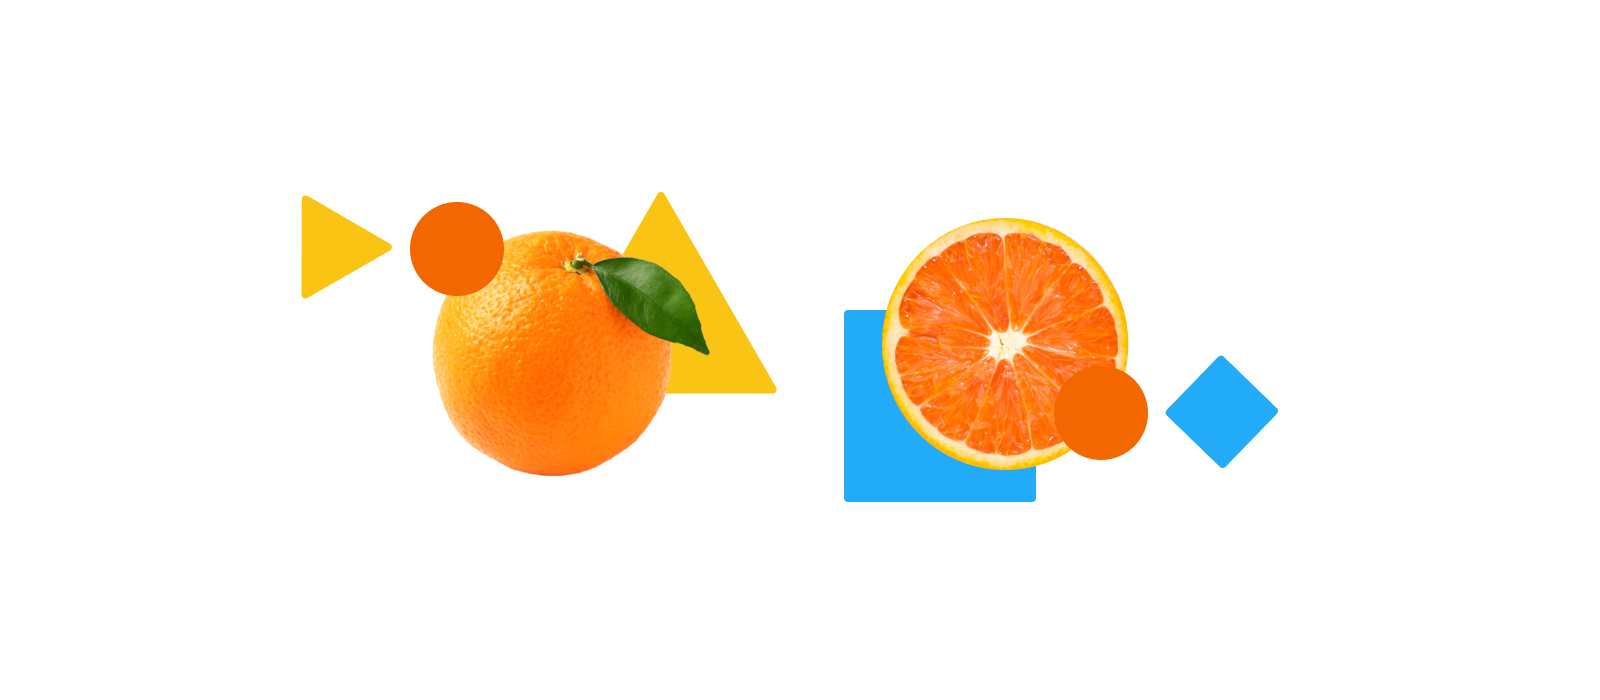 When it comes to Data, are you an Orange Picker or a Juice Maker?